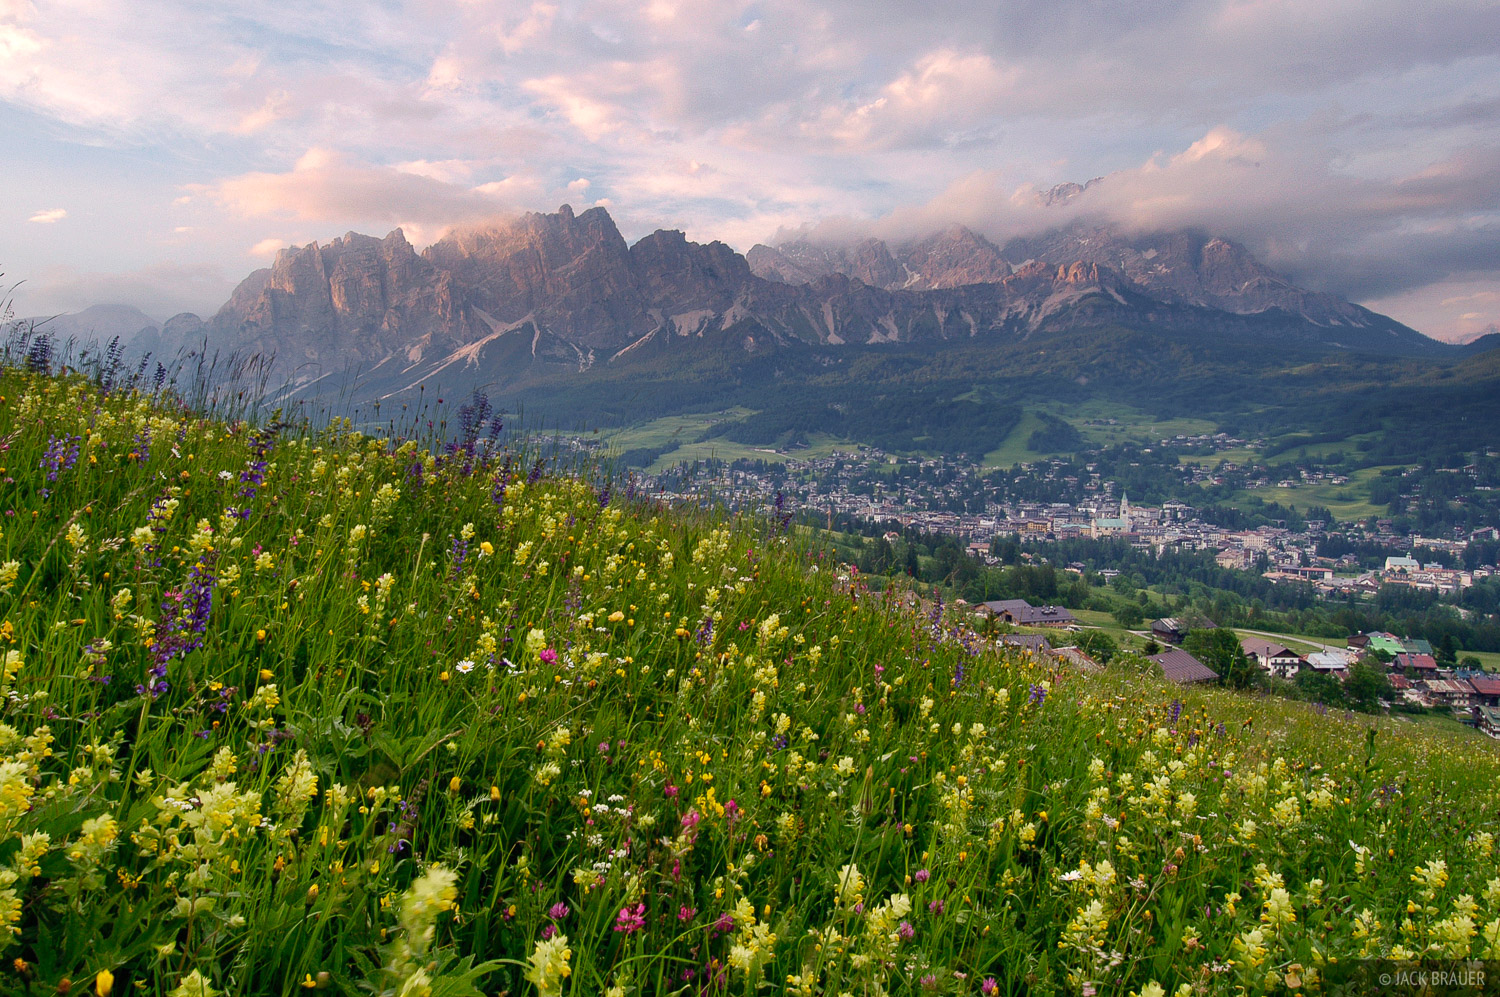 wildflowers, Cristallo, Cortina d'Ampezzo, Dolomites, Italy, Alps, photo